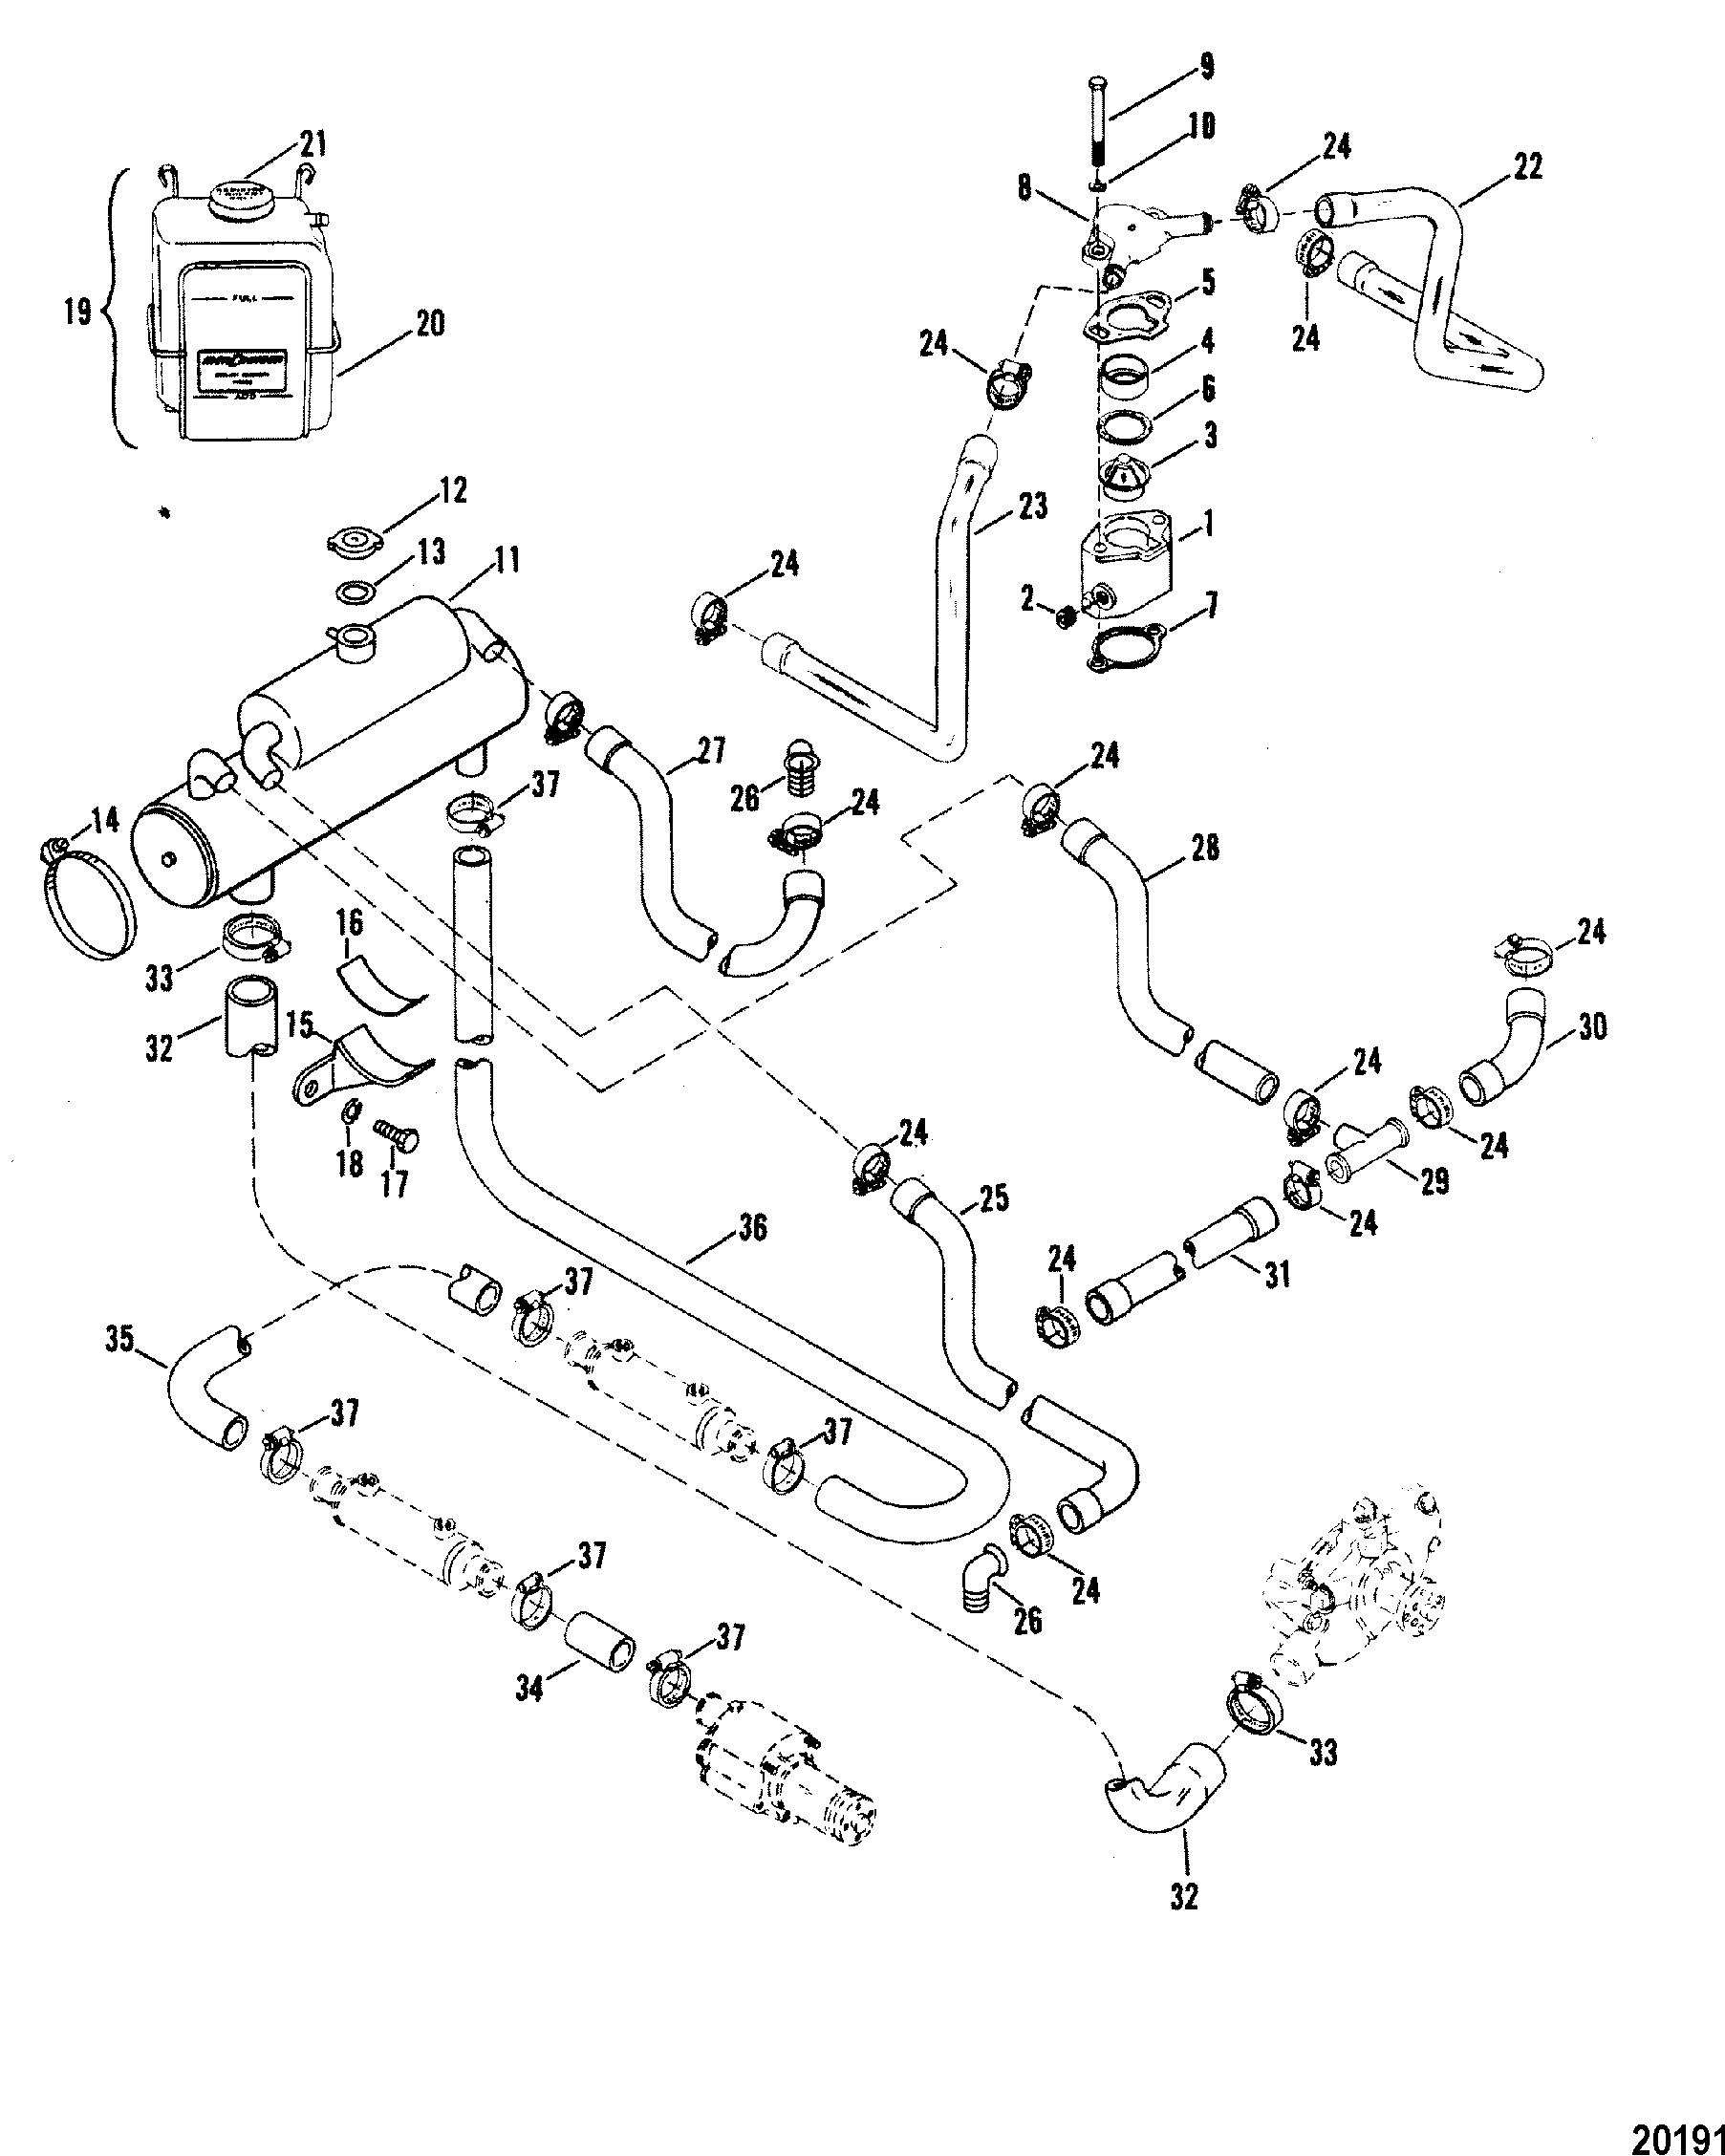 adapter to l5 l6